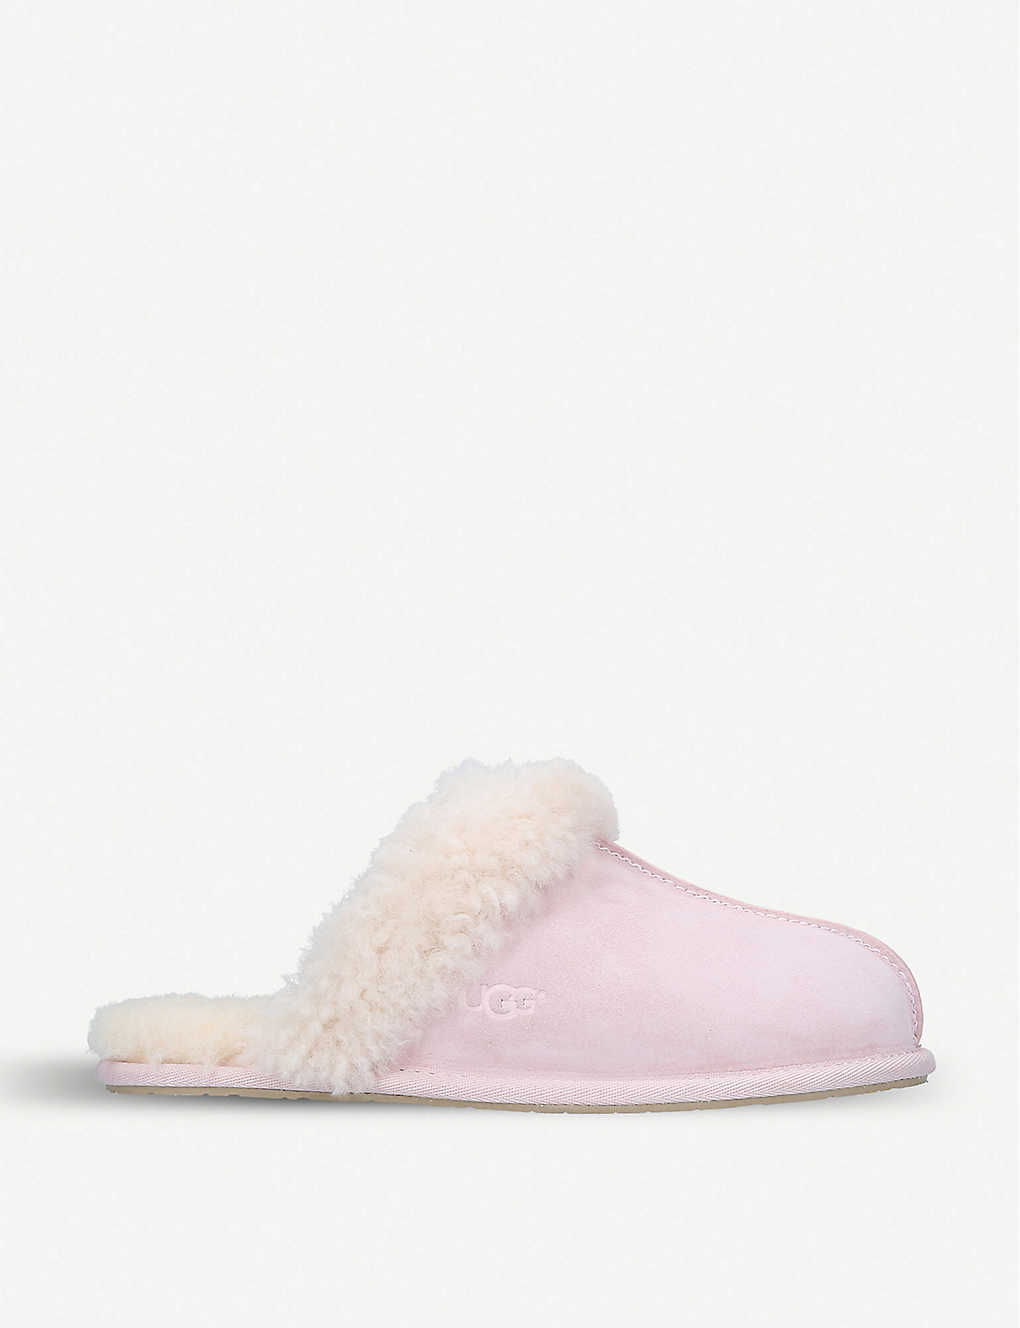 08748d4a145 UGG - Scuffette ii shearling-lined suede slippers